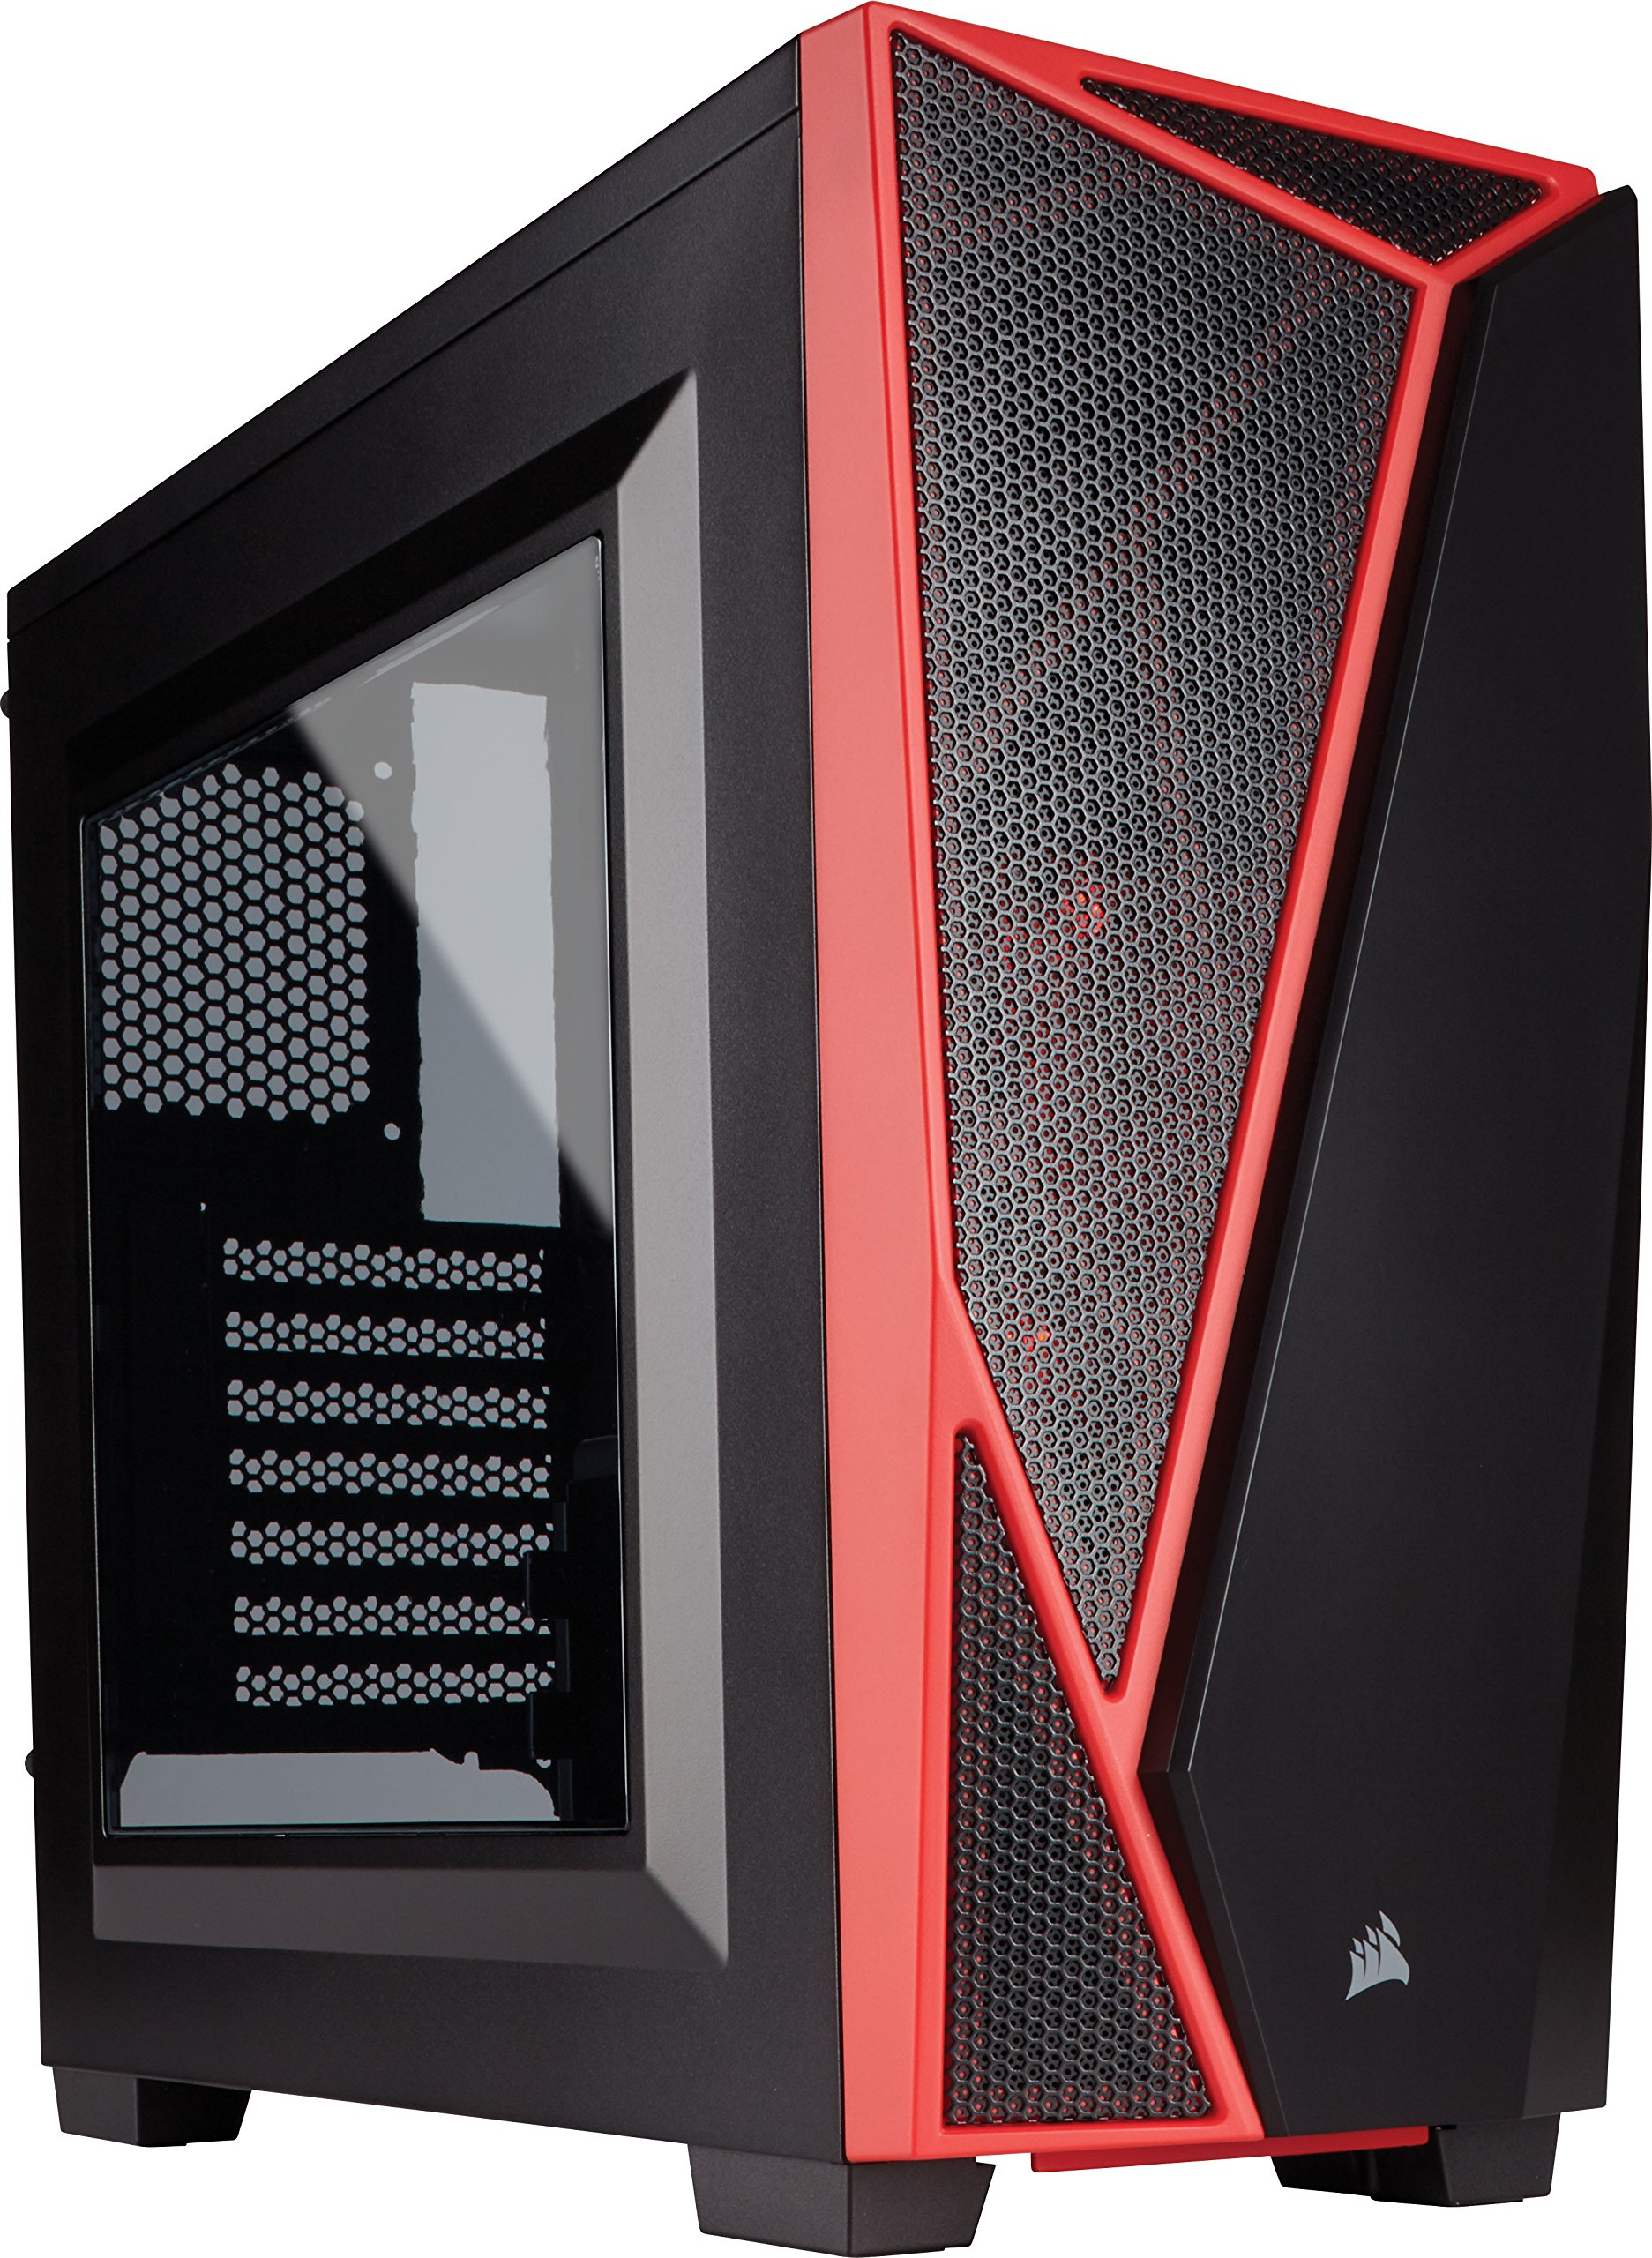 CORSAIR Carbide SPEC-04 Mid-Tower Gaming Case- Red